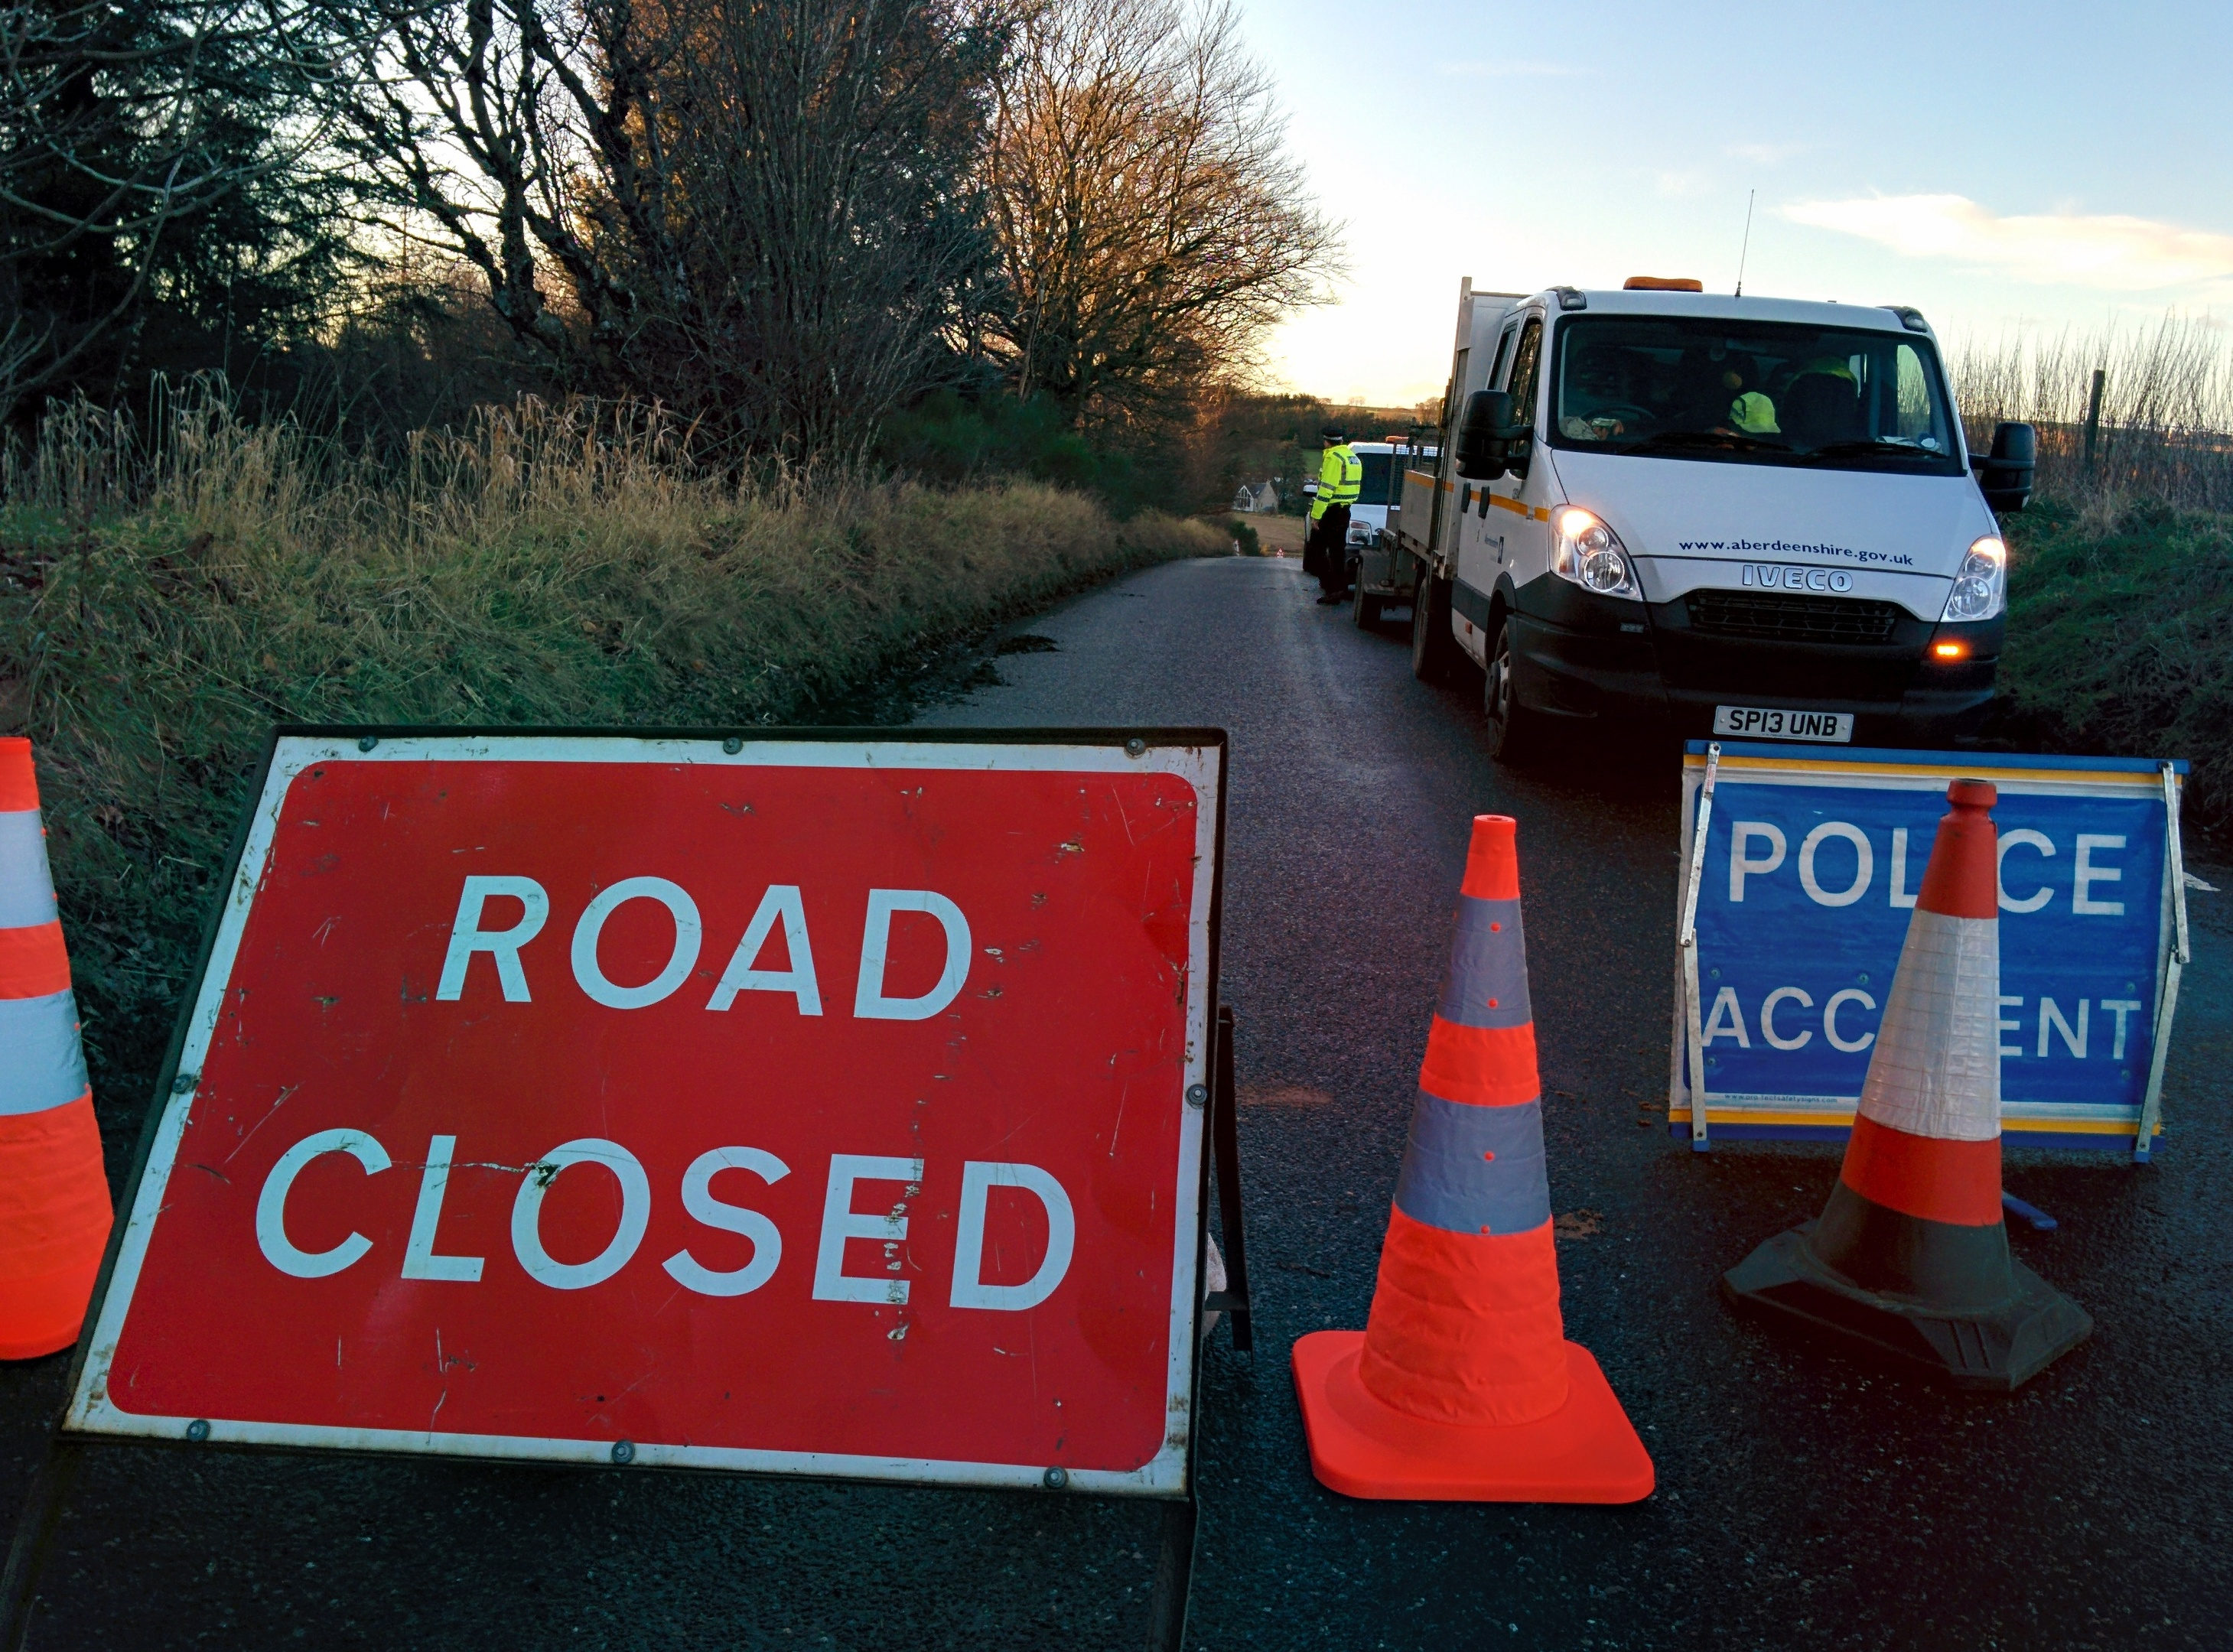 The road is closed following the incident